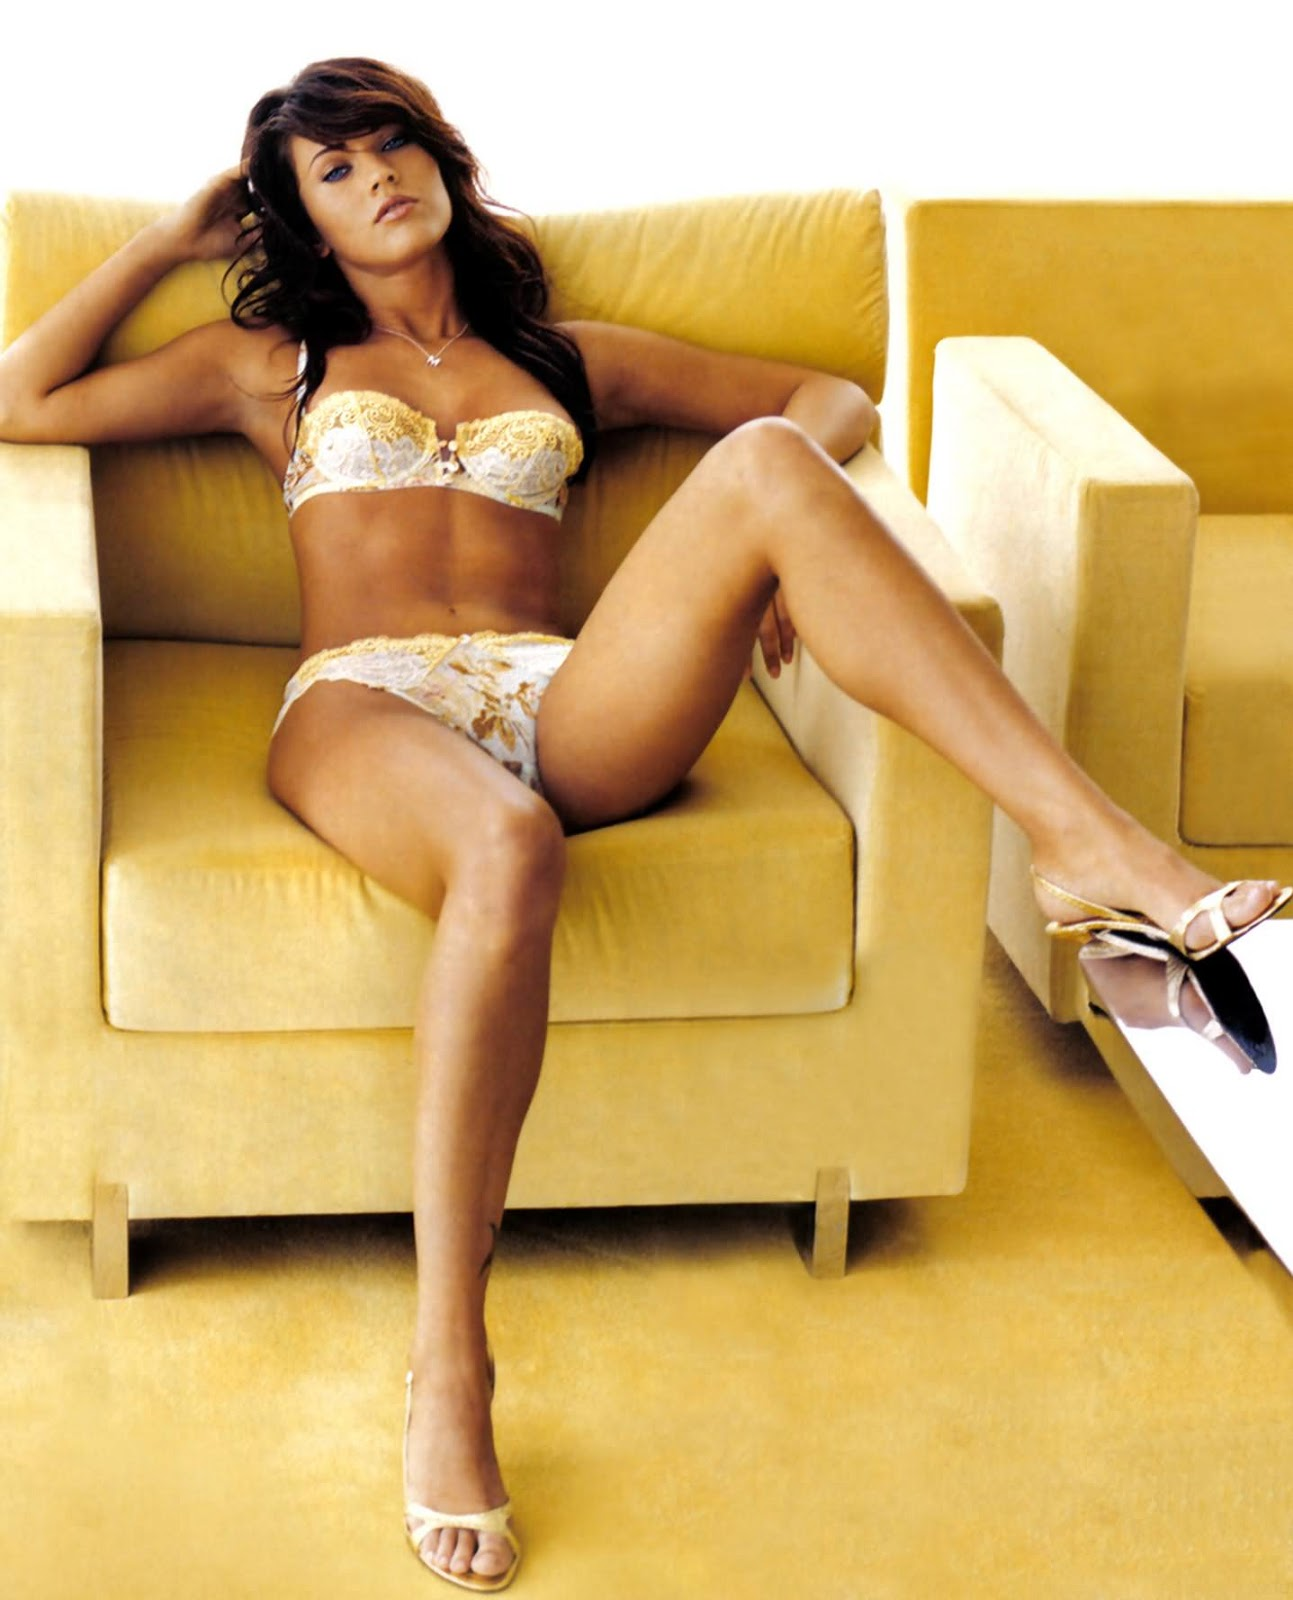 Megan fox beautiful new hot images 2013 its all about for Its hot pics